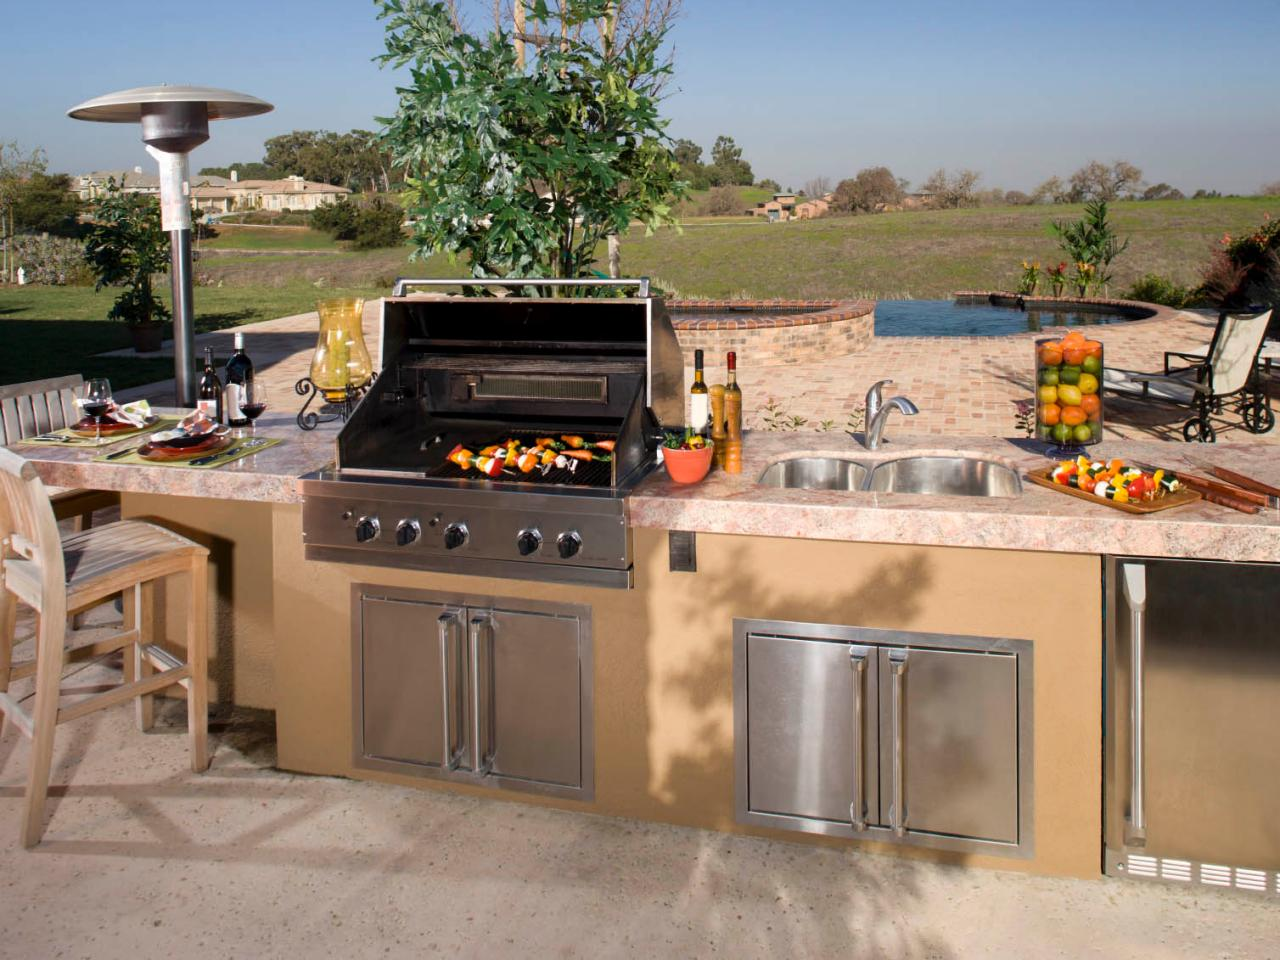 modular outdoor kitchens modular outdoor kitchen kits and accessories QVXKVYP